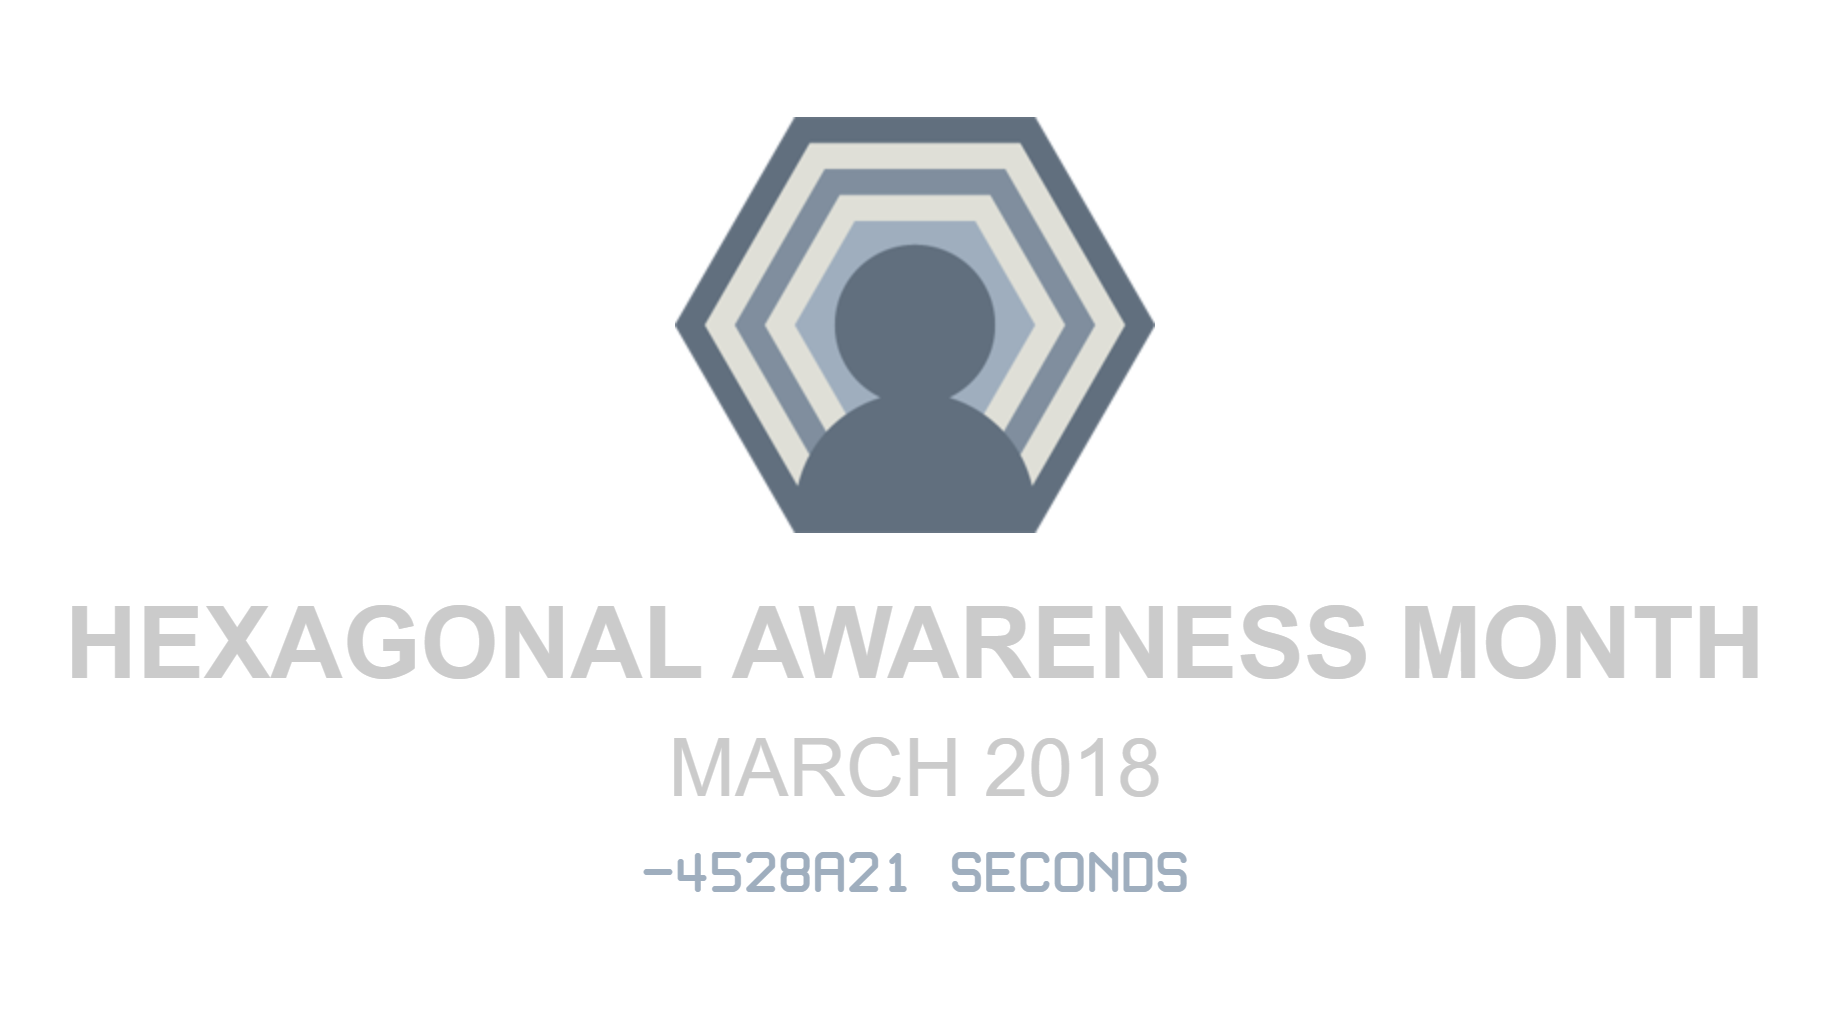 Hexagonal Awareness Month